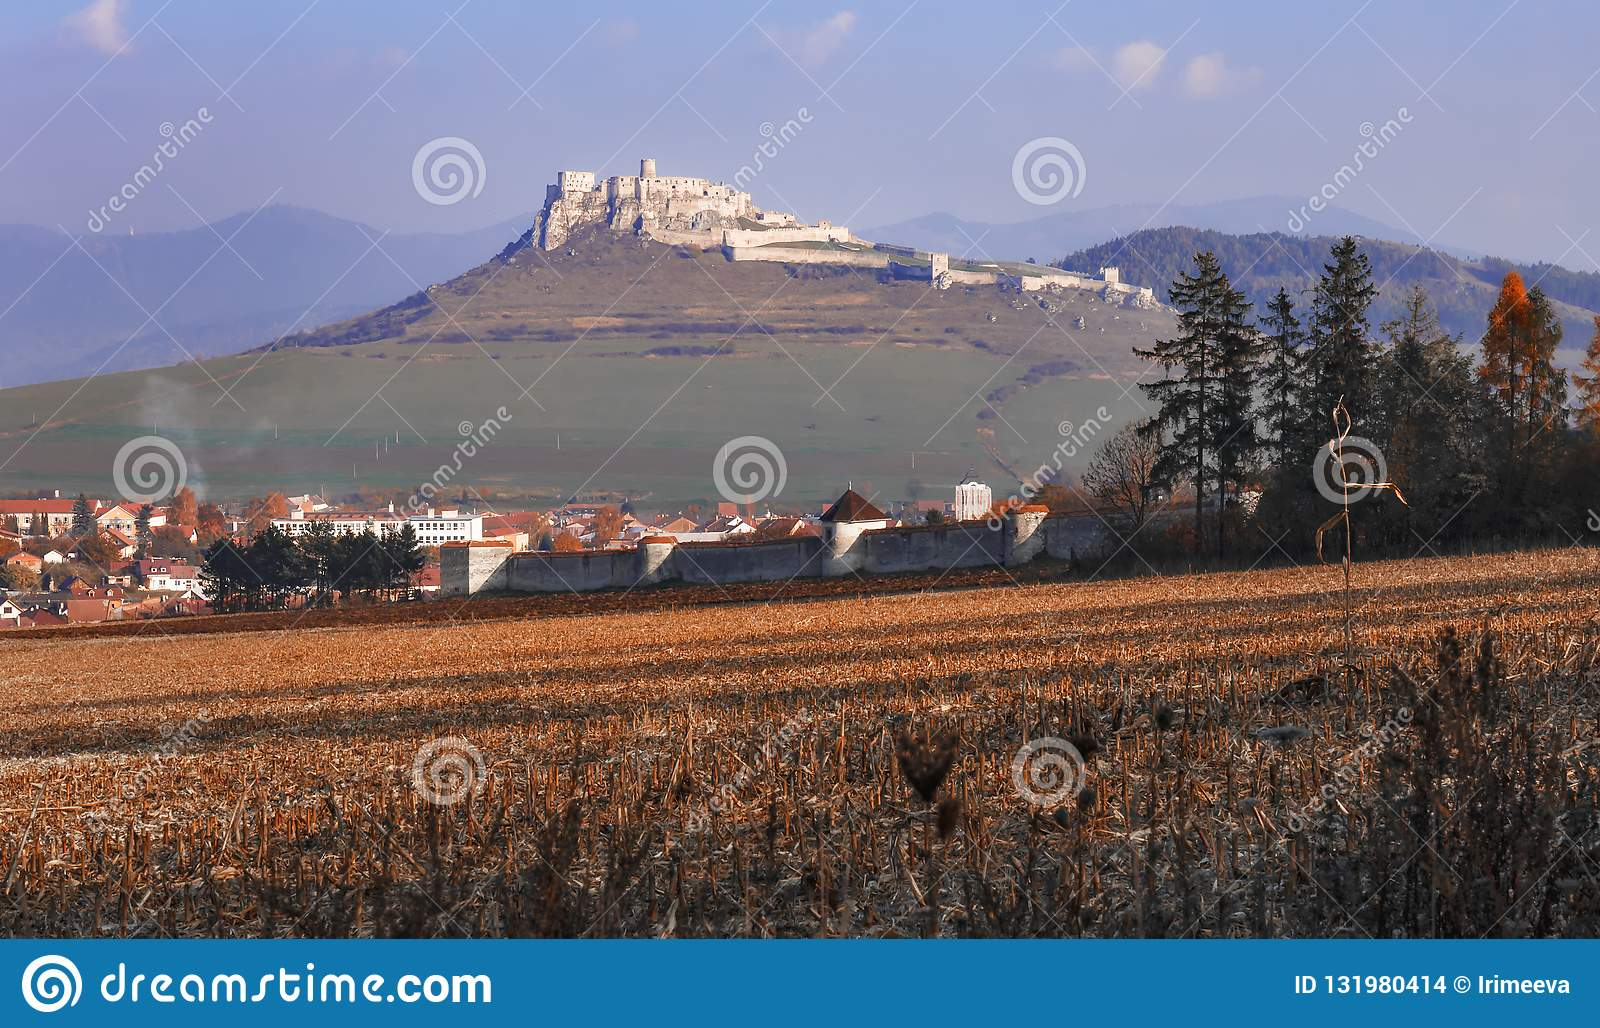 The ruins of Spis Castle in autumn - Slovak Republic